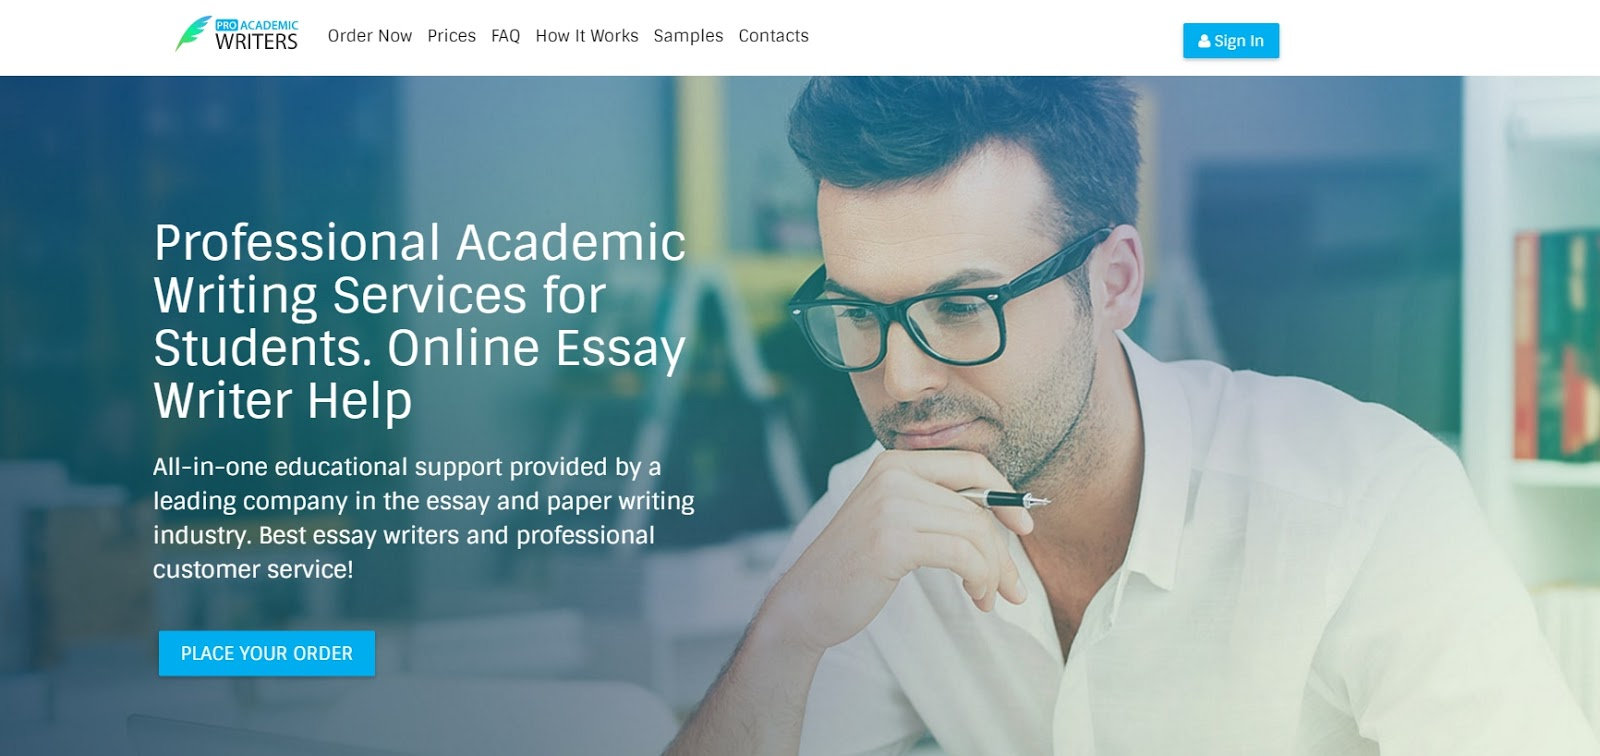 006 Pro Academic Writers Essay Writer Reviews Stunning Full